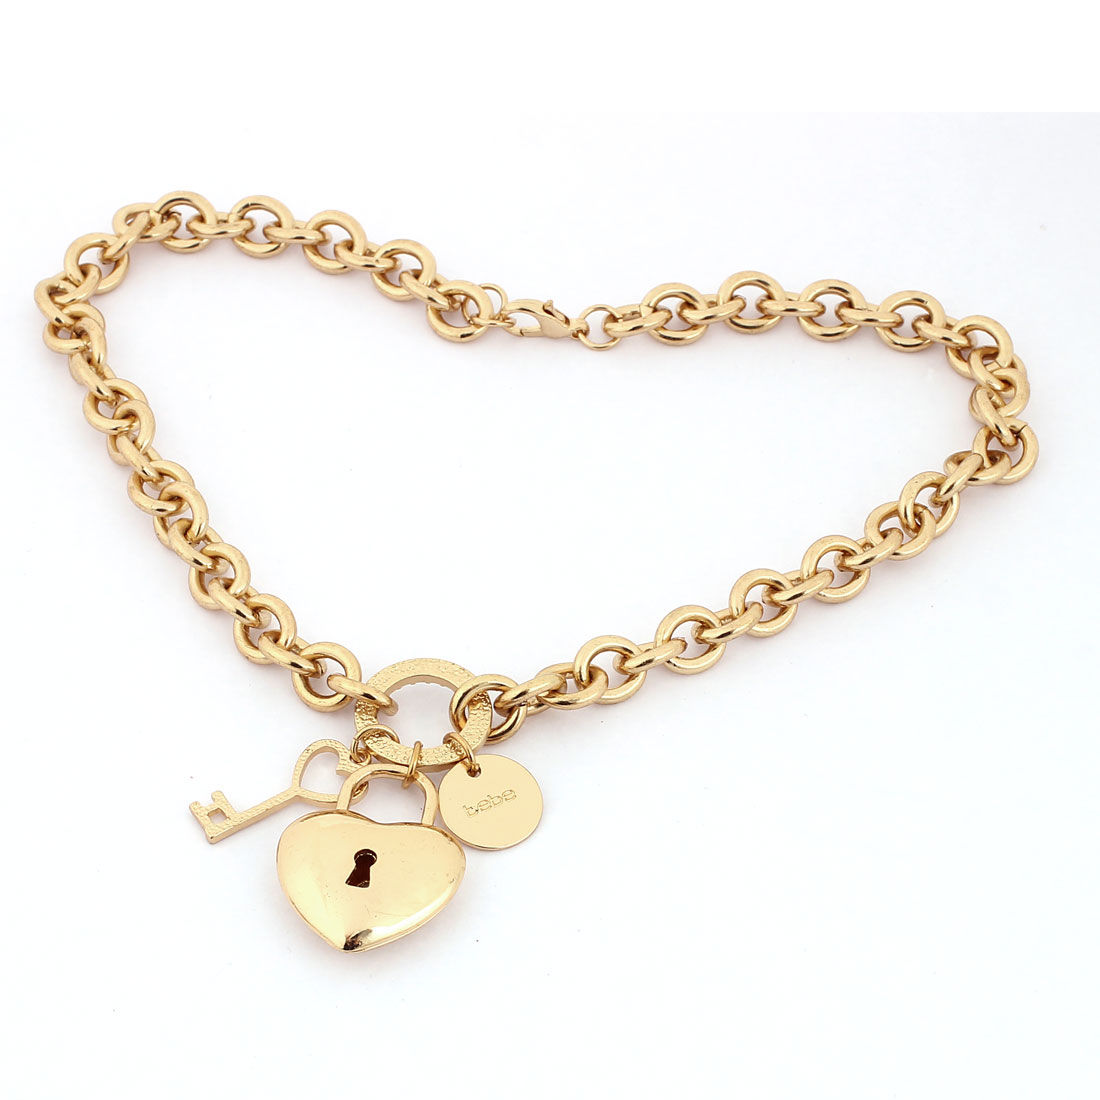 Gold Tone Metal Lock Key Shape Design Pendant Lobster Buckle Chain Necklace Neckwear Collar for Lady Women